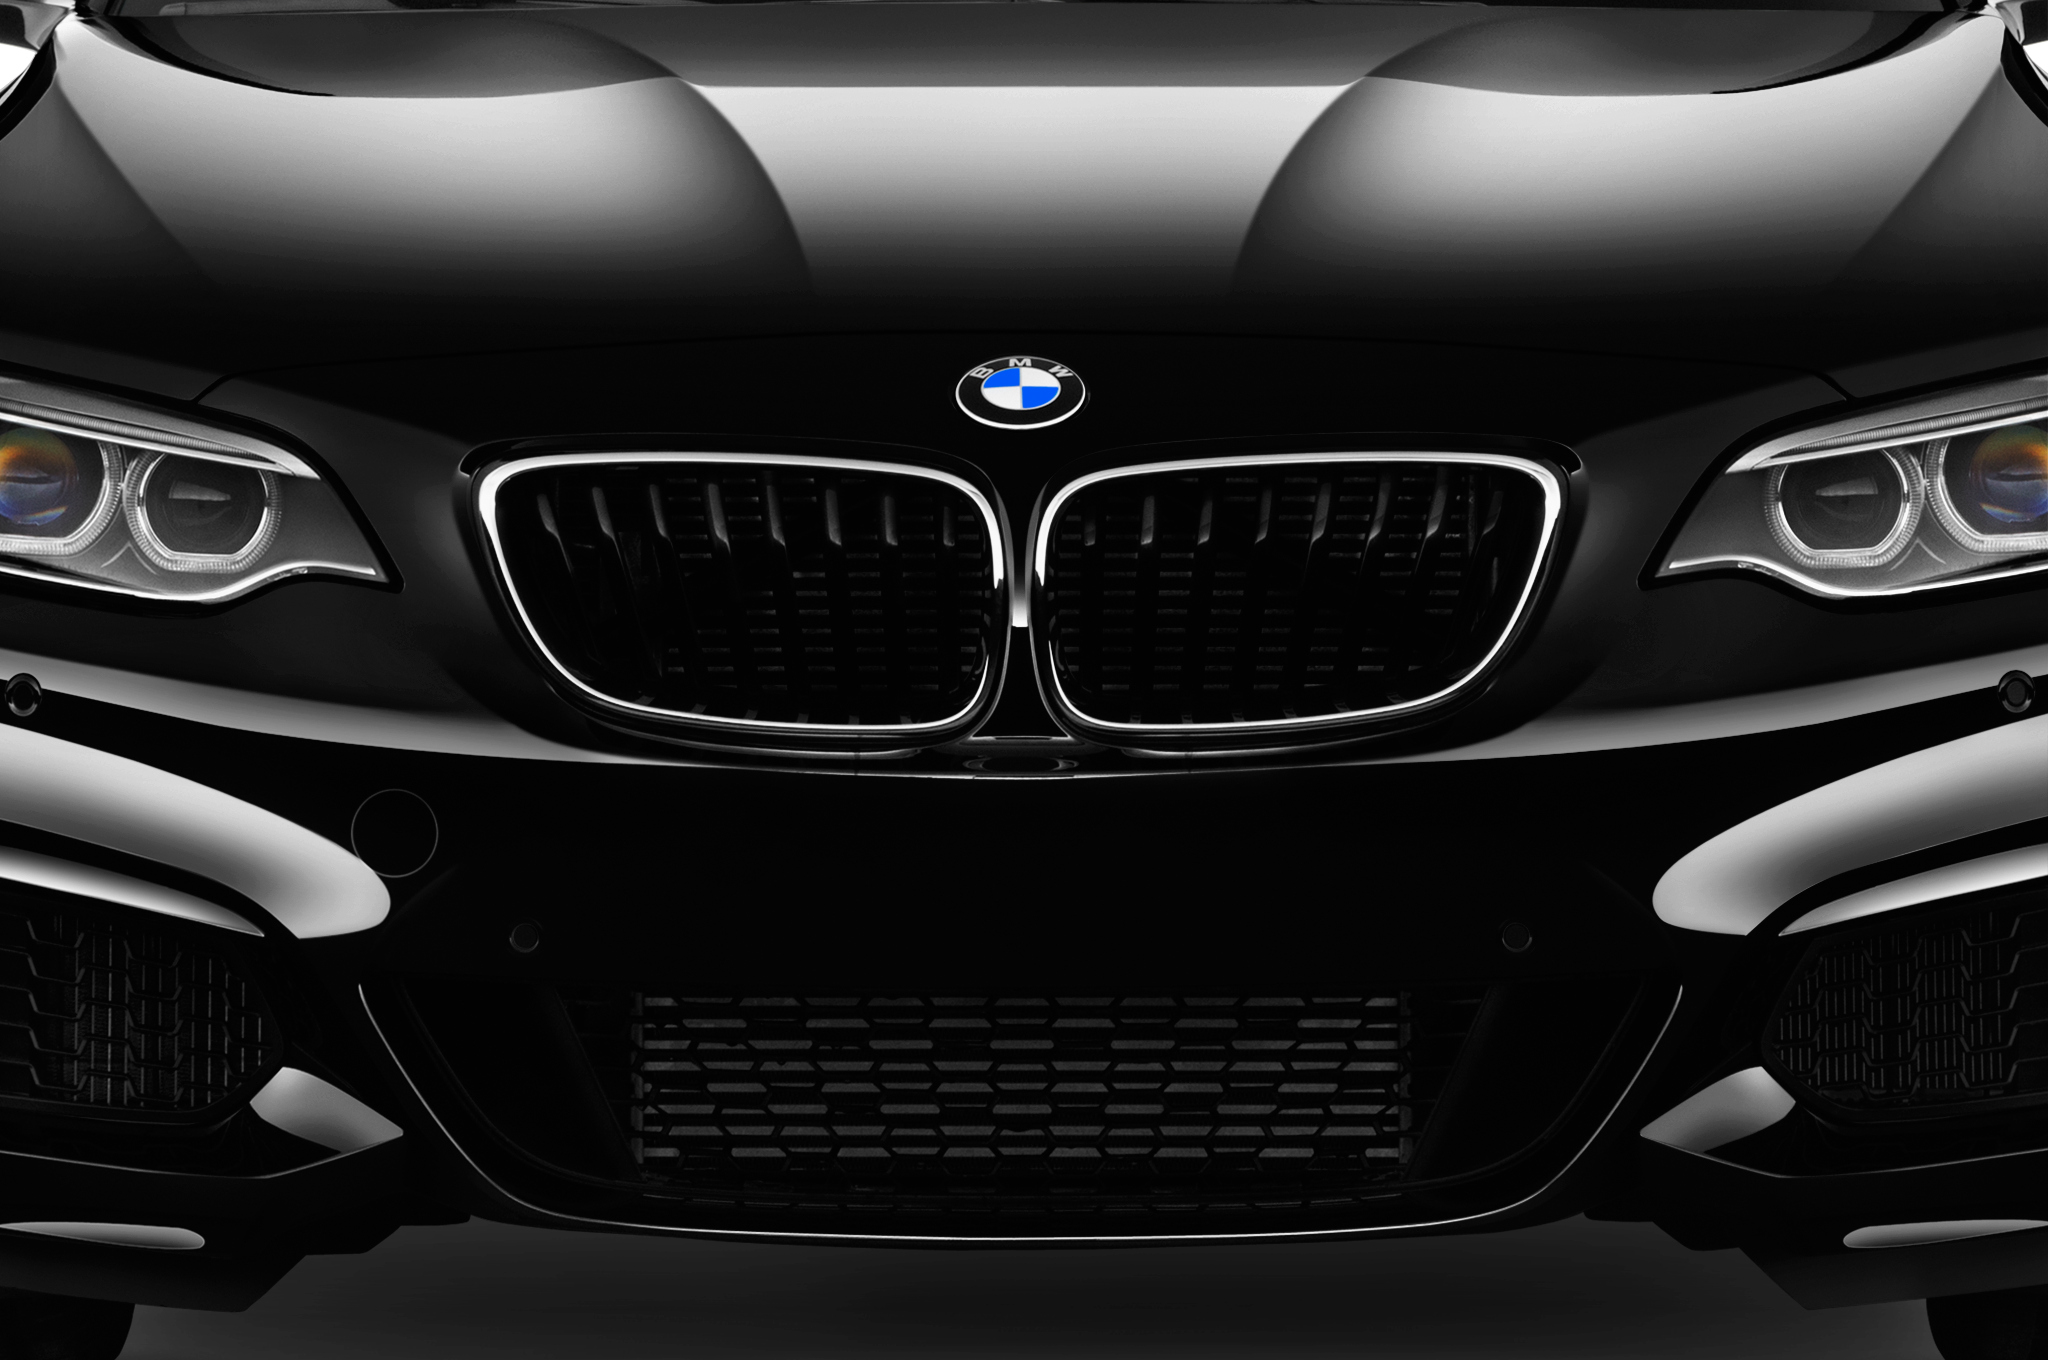 2017 Bmw 2 Series Lineup Revealed With New Engines